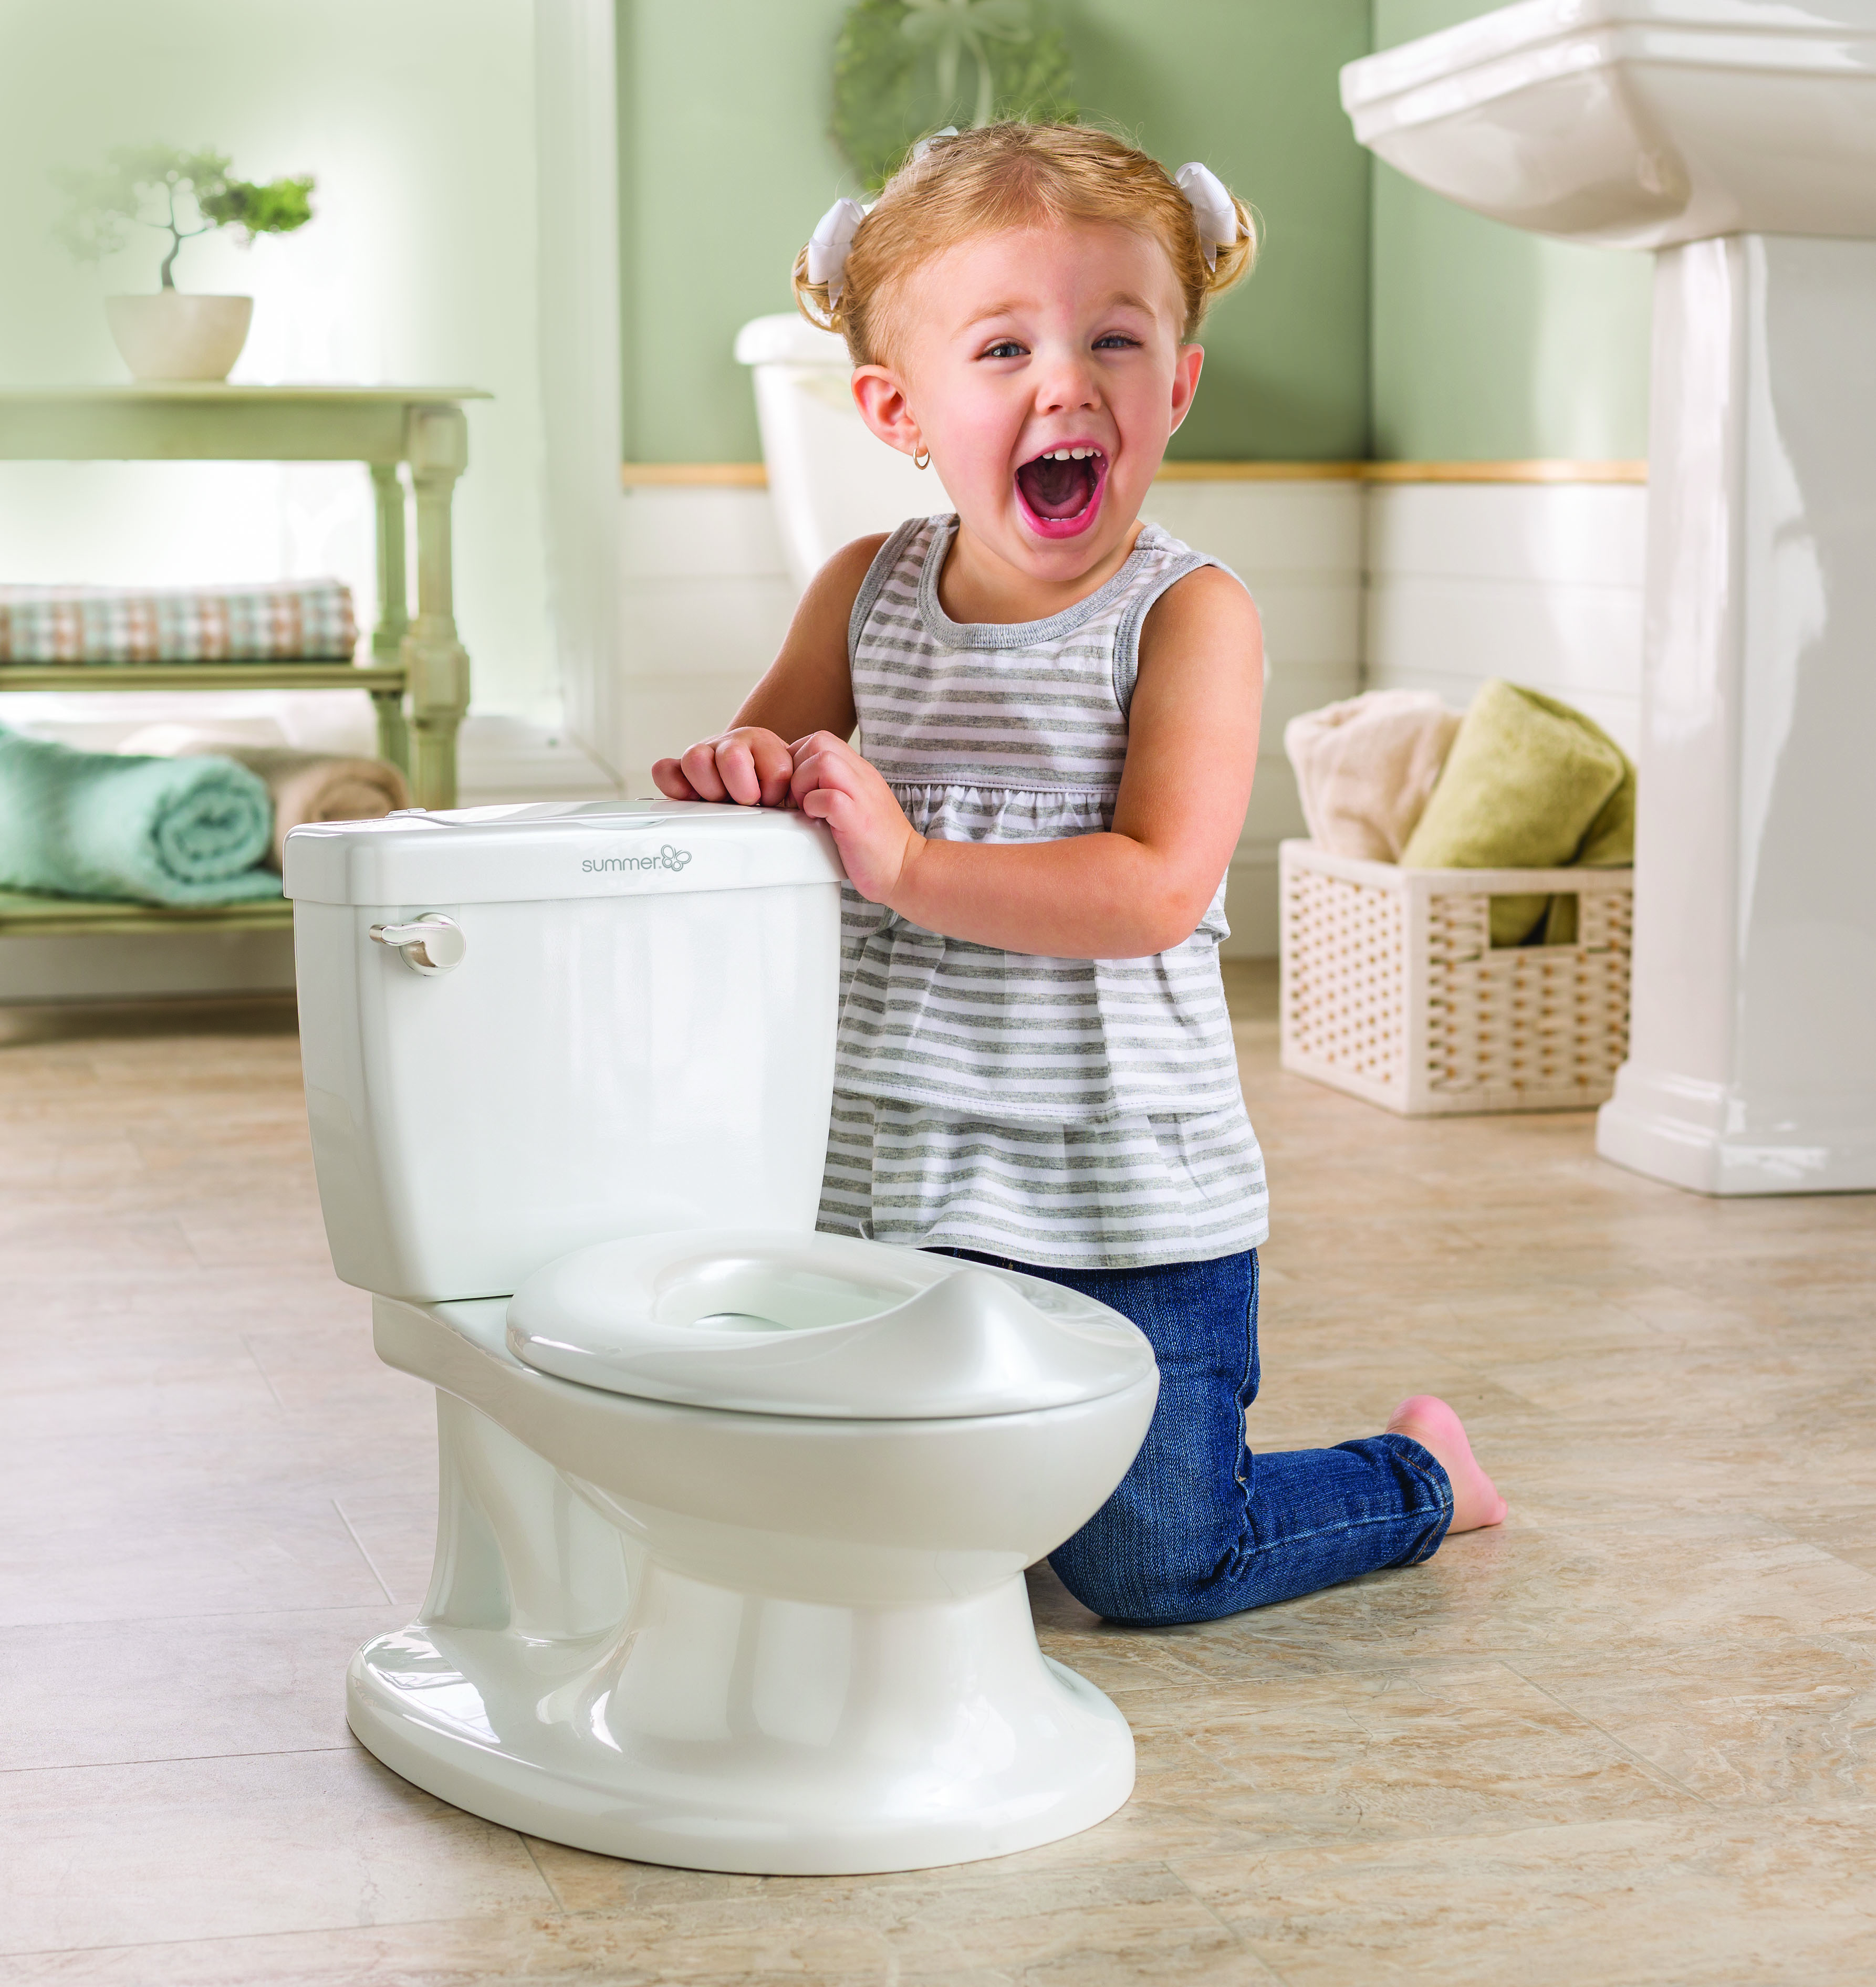 Top Tips On Potty Training Summer Infant Baby Products